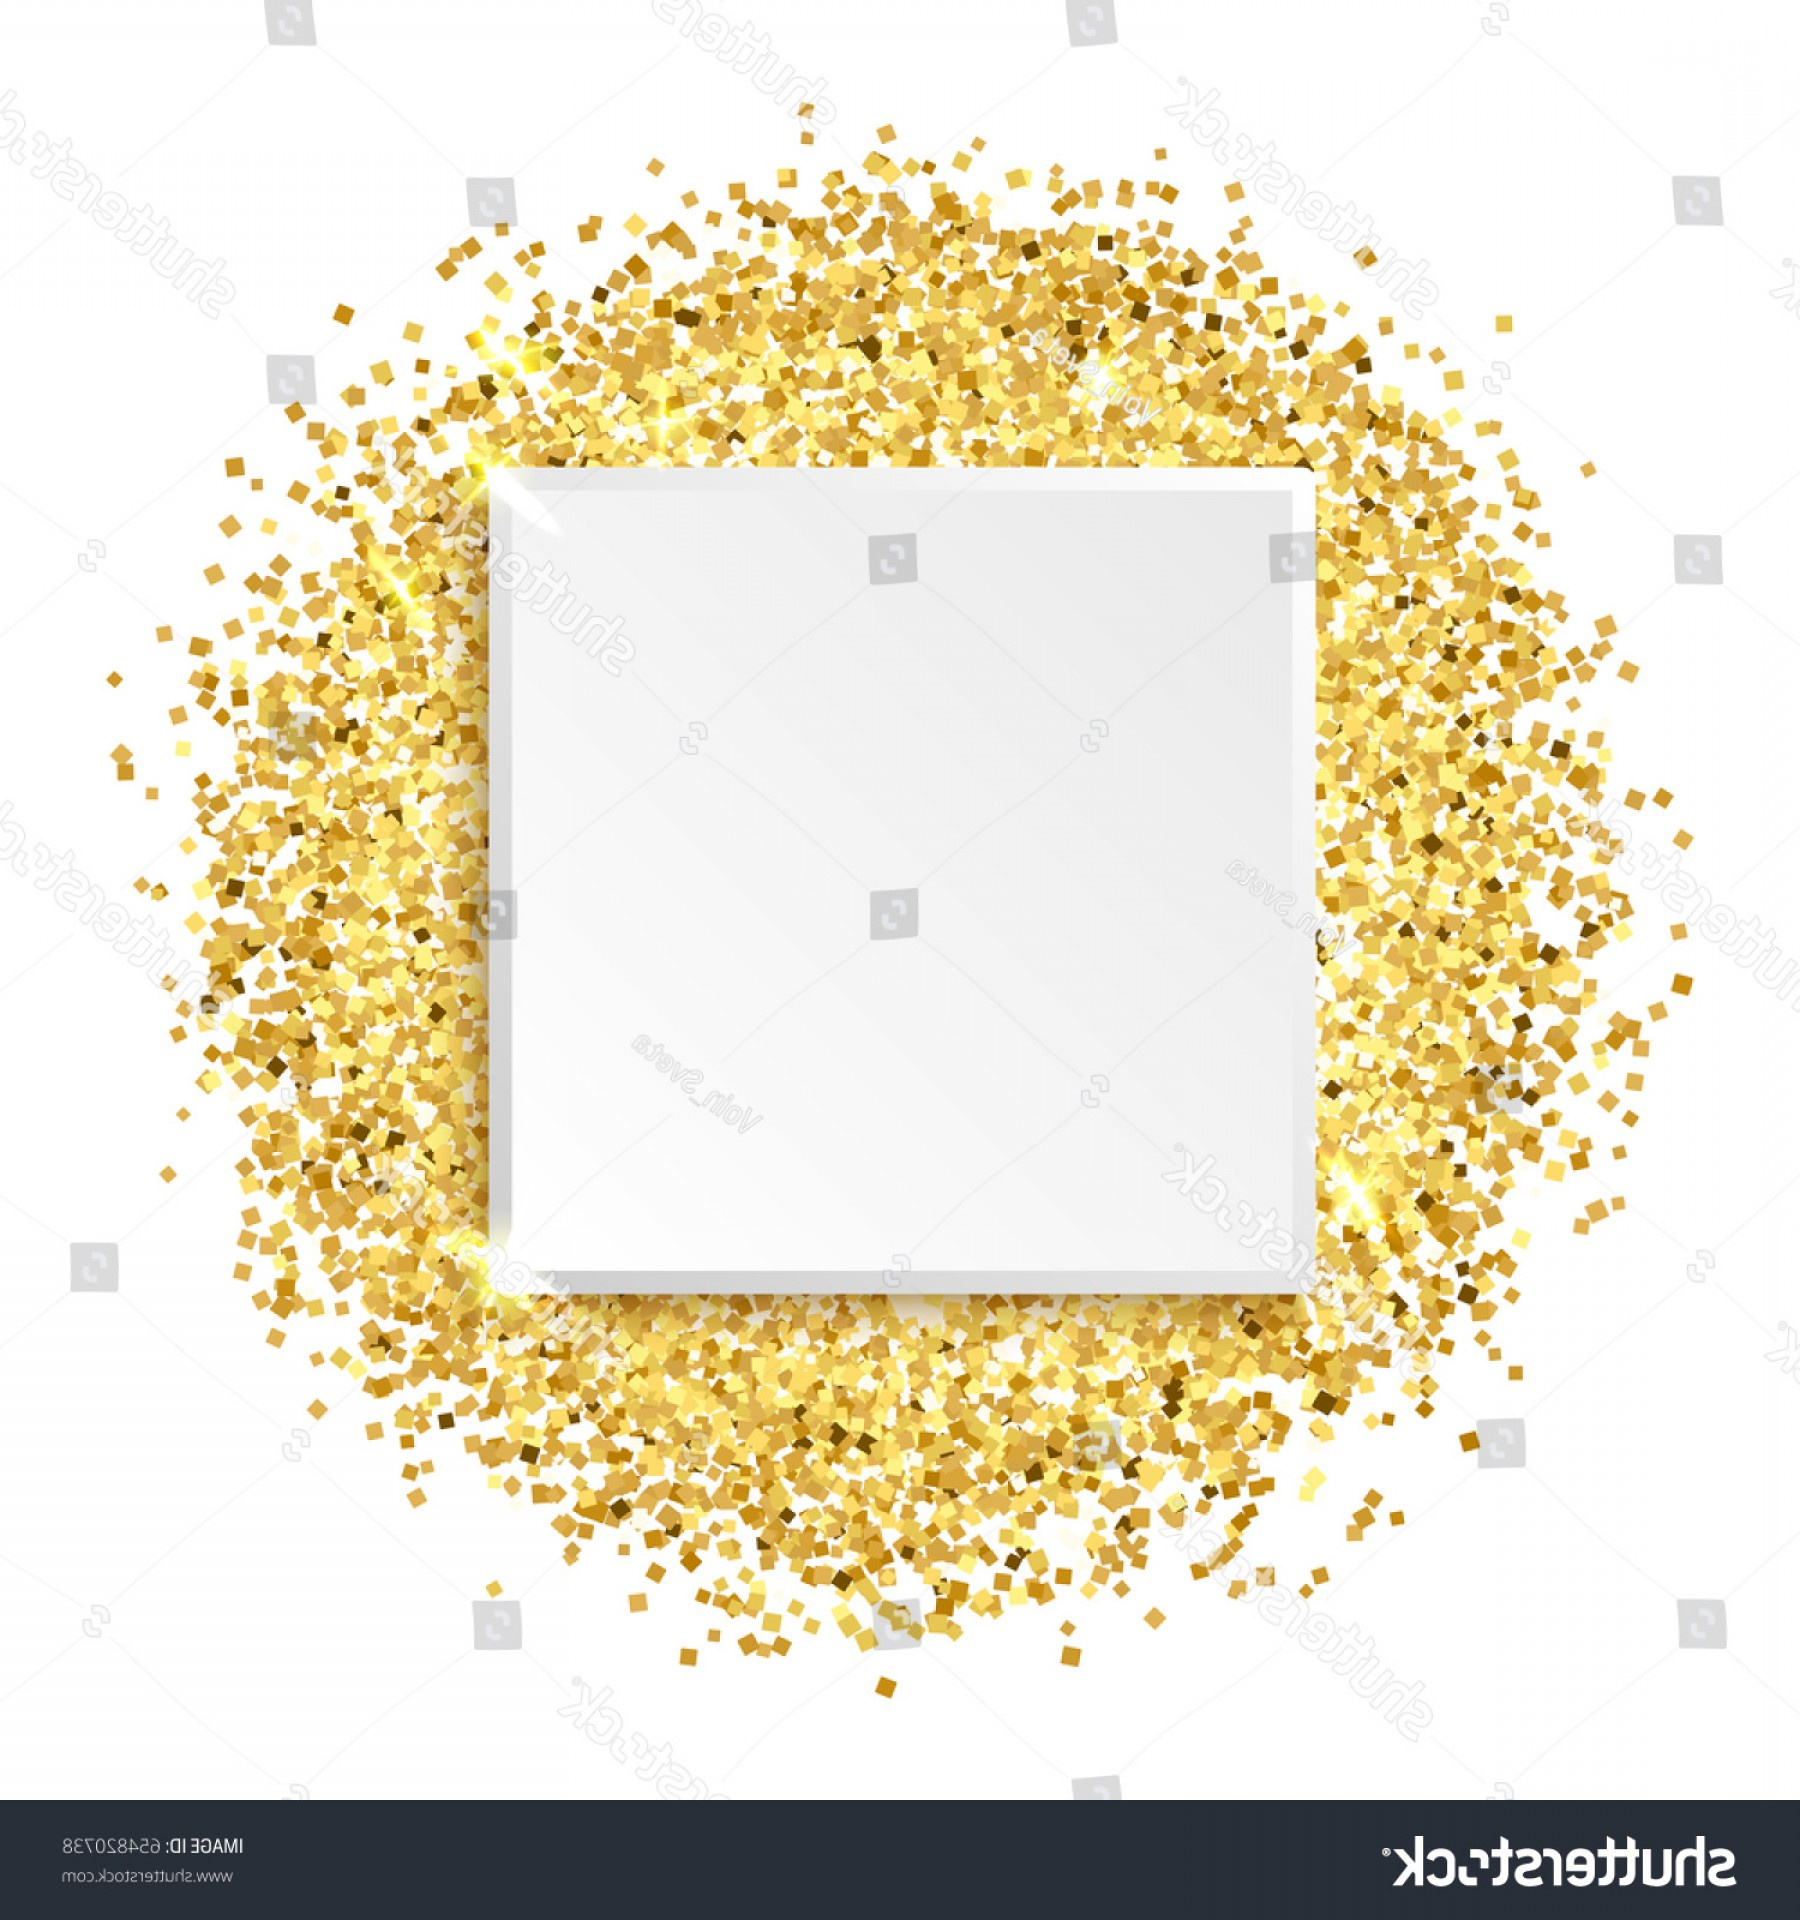 Square Gold Frame Vector PNG: Square Glitter Gold Frame Vector Illustration